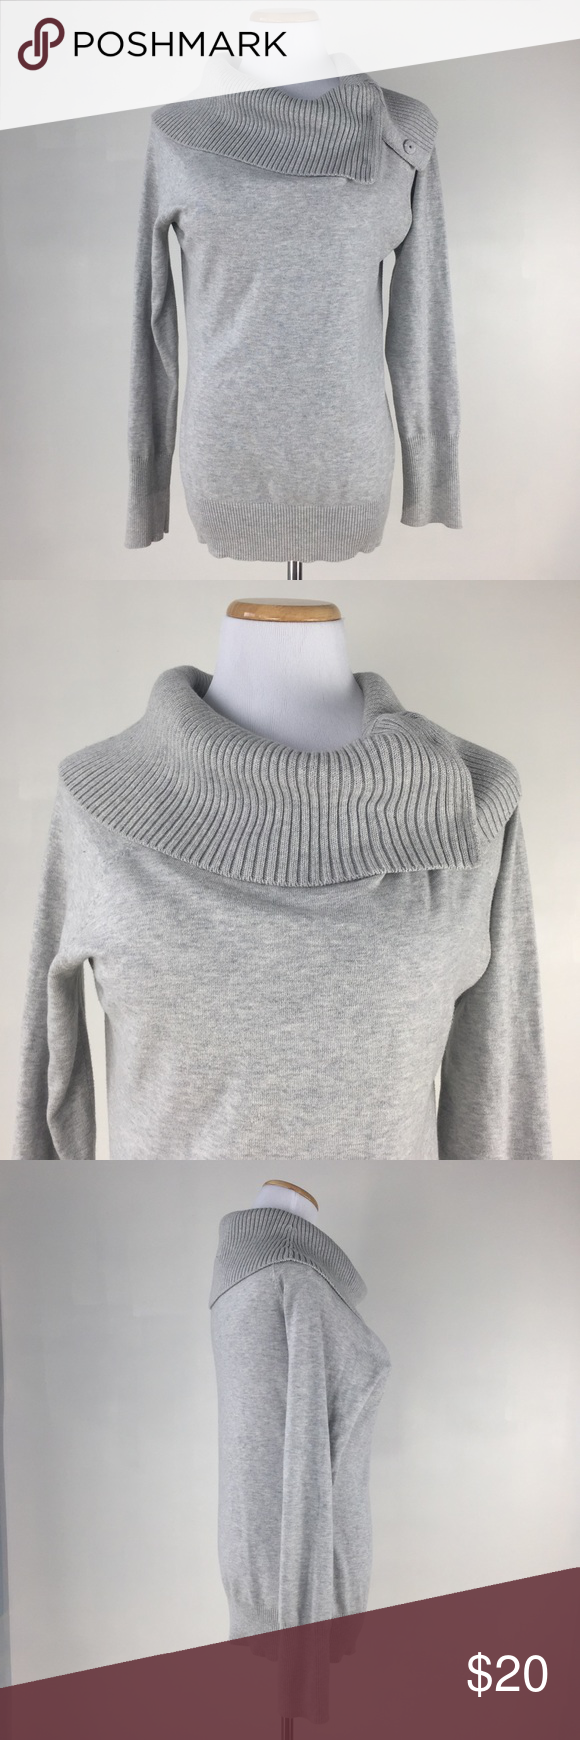 White House black market size M sweater gray This is a size M turtleneck pullover long sleeves sweater by White House black market. Gray color. 3 snaps on the collar. Great shape and excellent condition. White House Black Market Sweaters Cowl & Turtlenecks